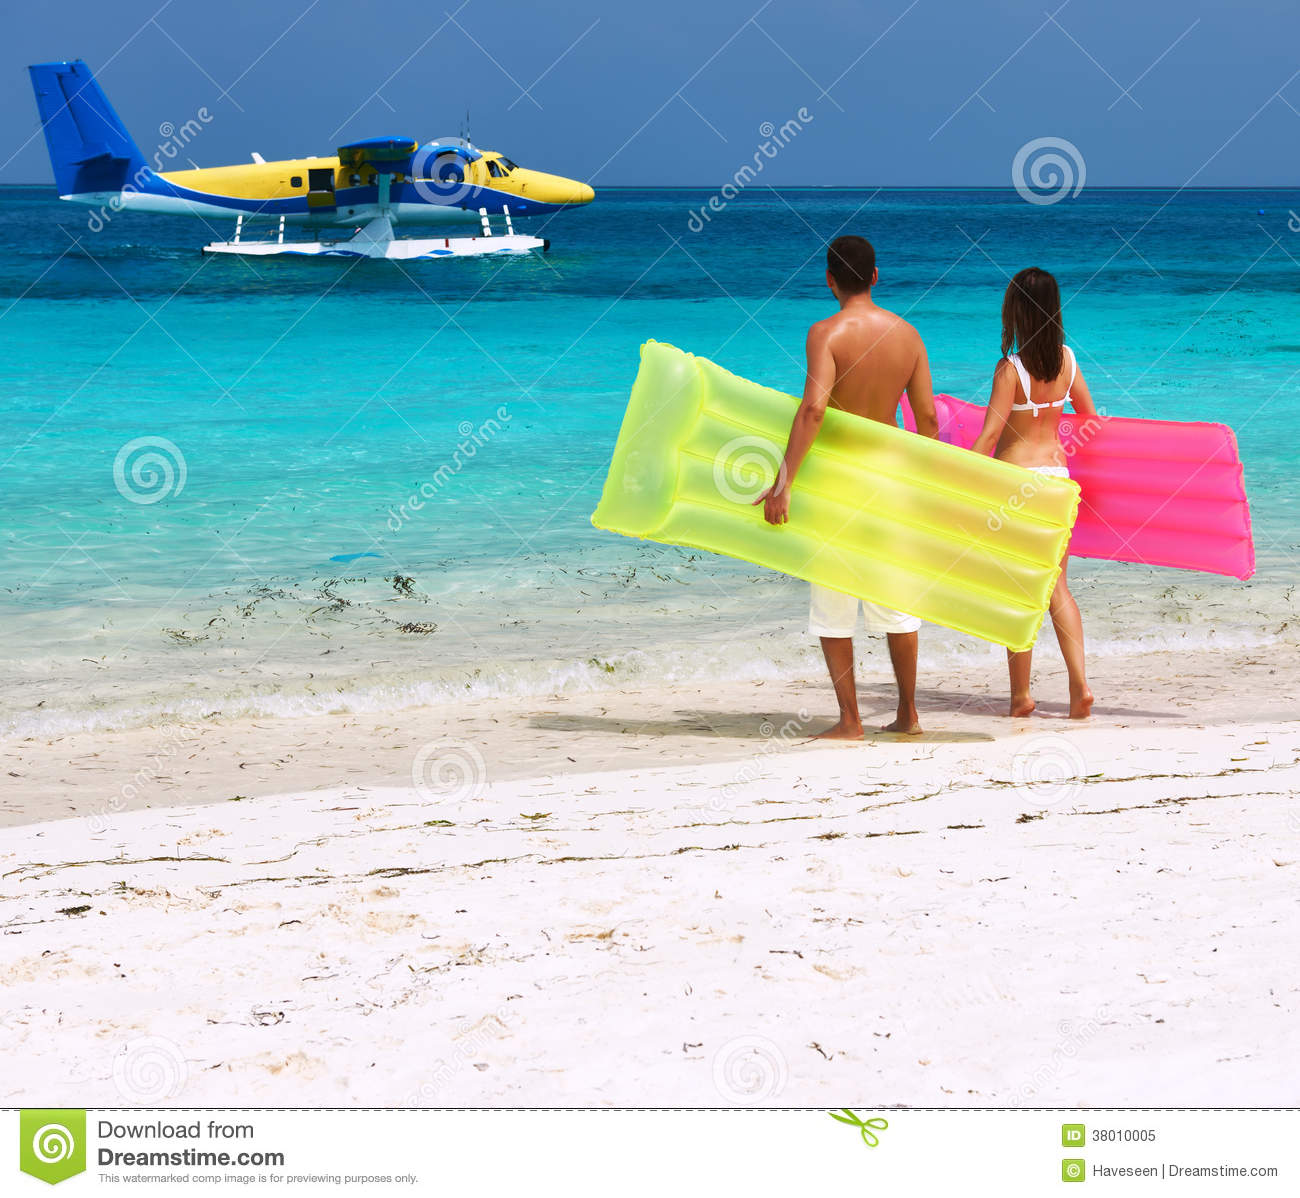 Couple At The Beach Stock Image Image Of Caucasian: Couple With Inflatable Rafts Looking At Seaplane On Beach